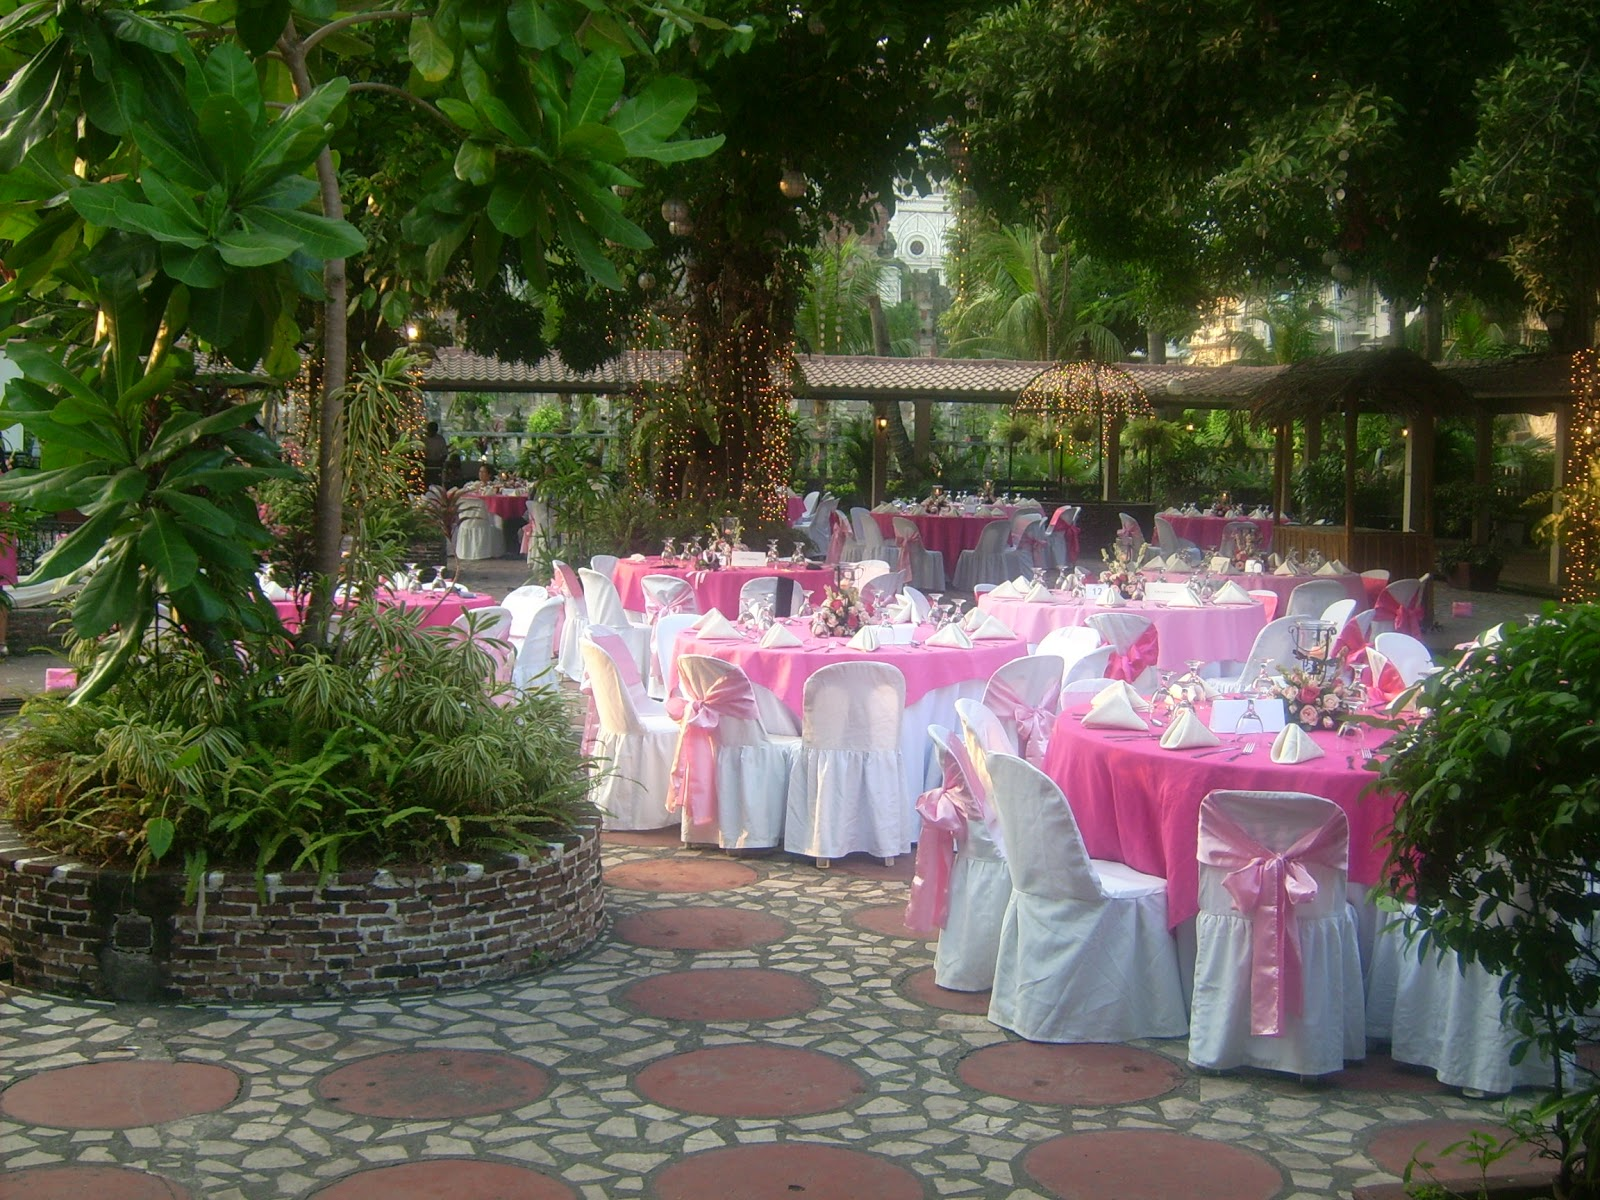 Lq designs ideas for wedding receptions on a budget for Outdoor wedding decorations on a budget